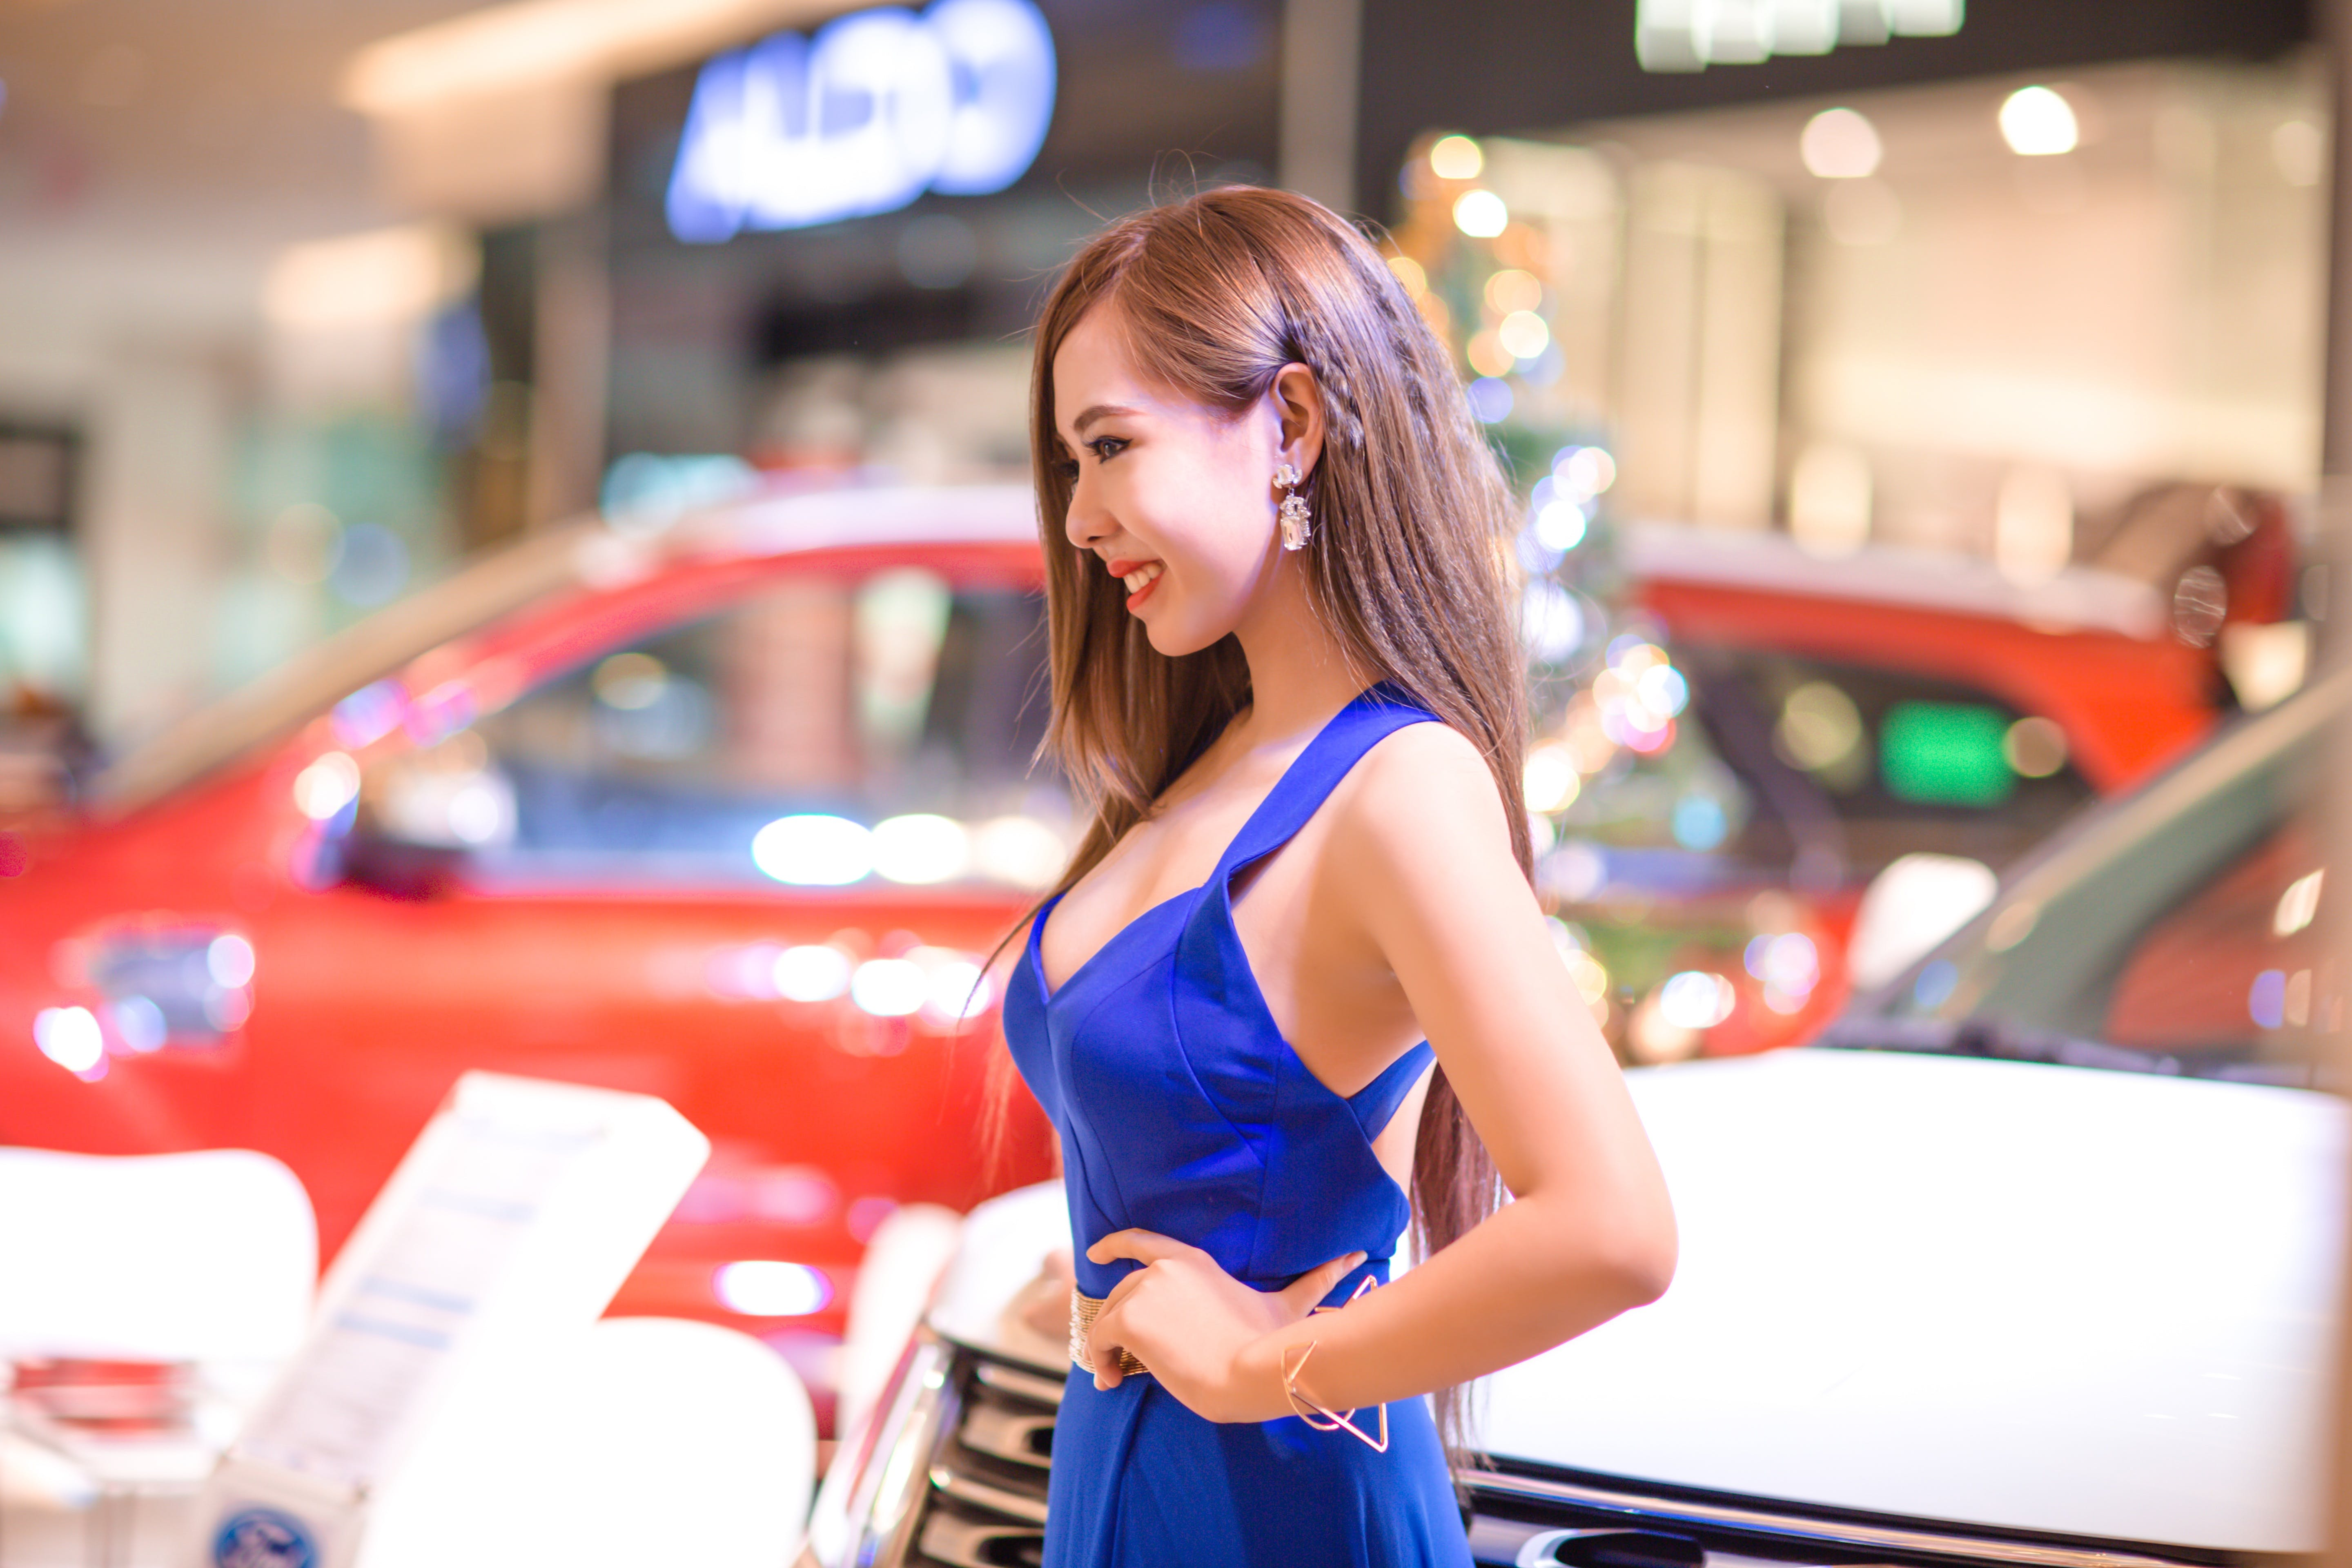 Woman Standing Near Car While Left Hand on Her Lest Waist